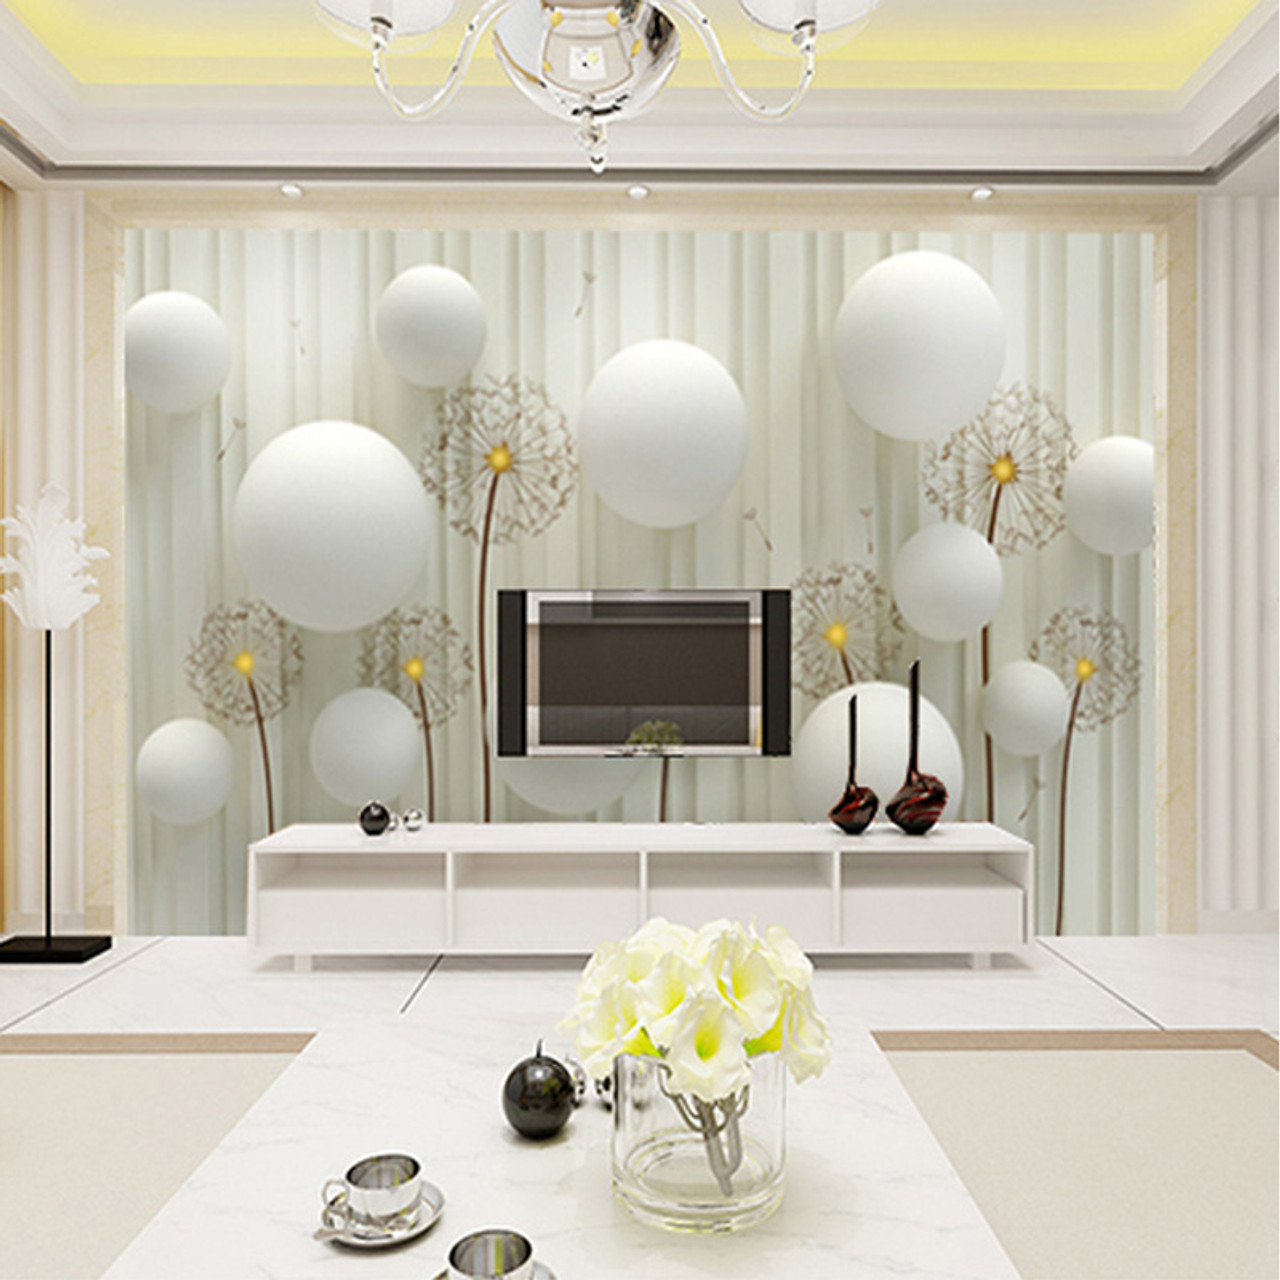 Custom 3d Photo Wallpaper Modern Fashion Simple And Soft Dandelion Bedding Room Sofa Backdrop Mural Wall Paper For The Walls 3d Onshopdeals Com